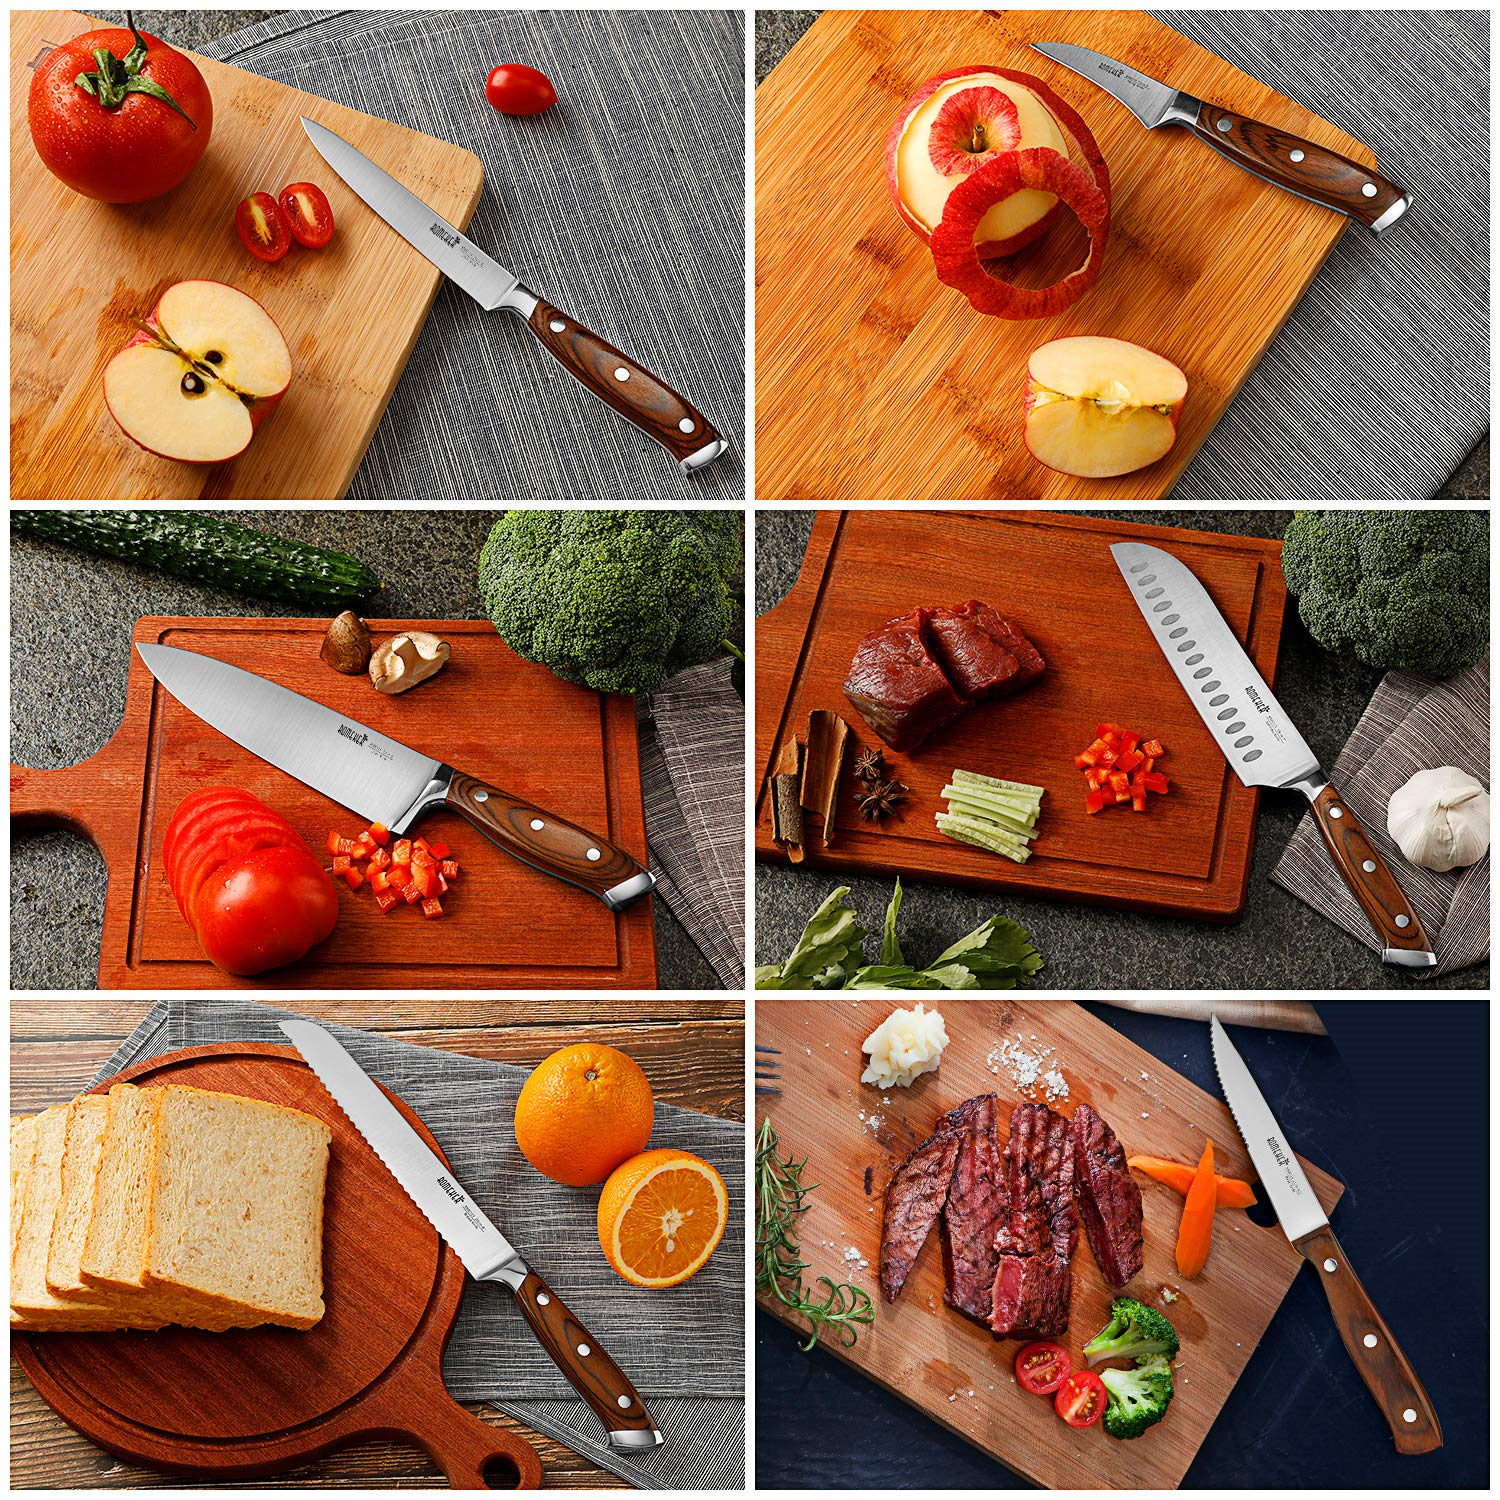 Knife Set,6-Piece Kitchen Knife Set with Wooden Block Germany High Carbon Stainless Steel Knife Block Set,Chef Knife Set Boxed Knife Set by ROMEKER by ROMEKER (Image #6)